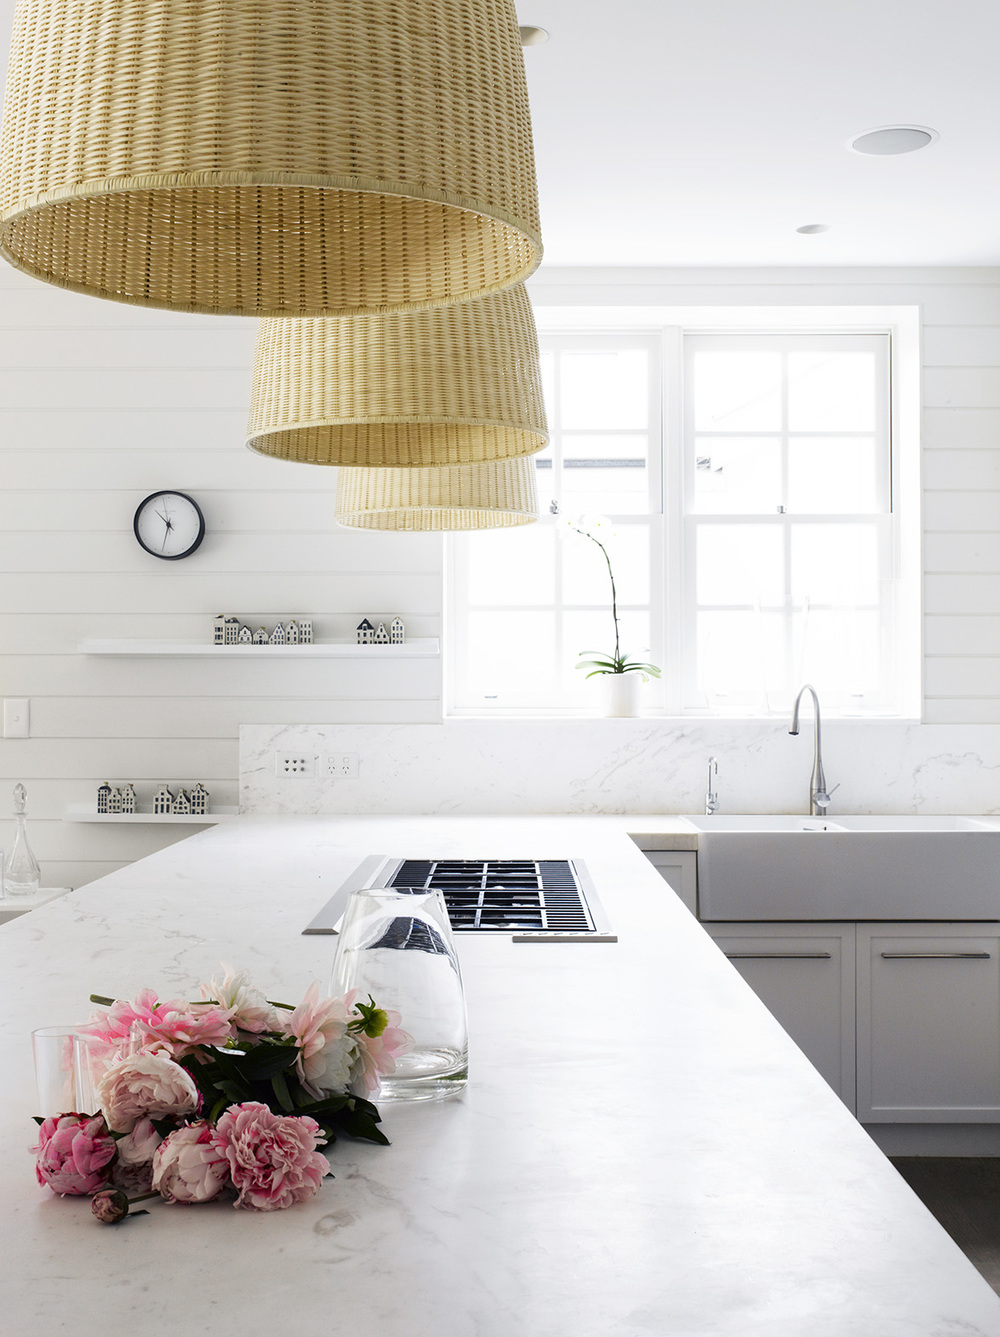 Woollahra project by ANNA CARIN DESIGN. Photographer: Amanda Prior